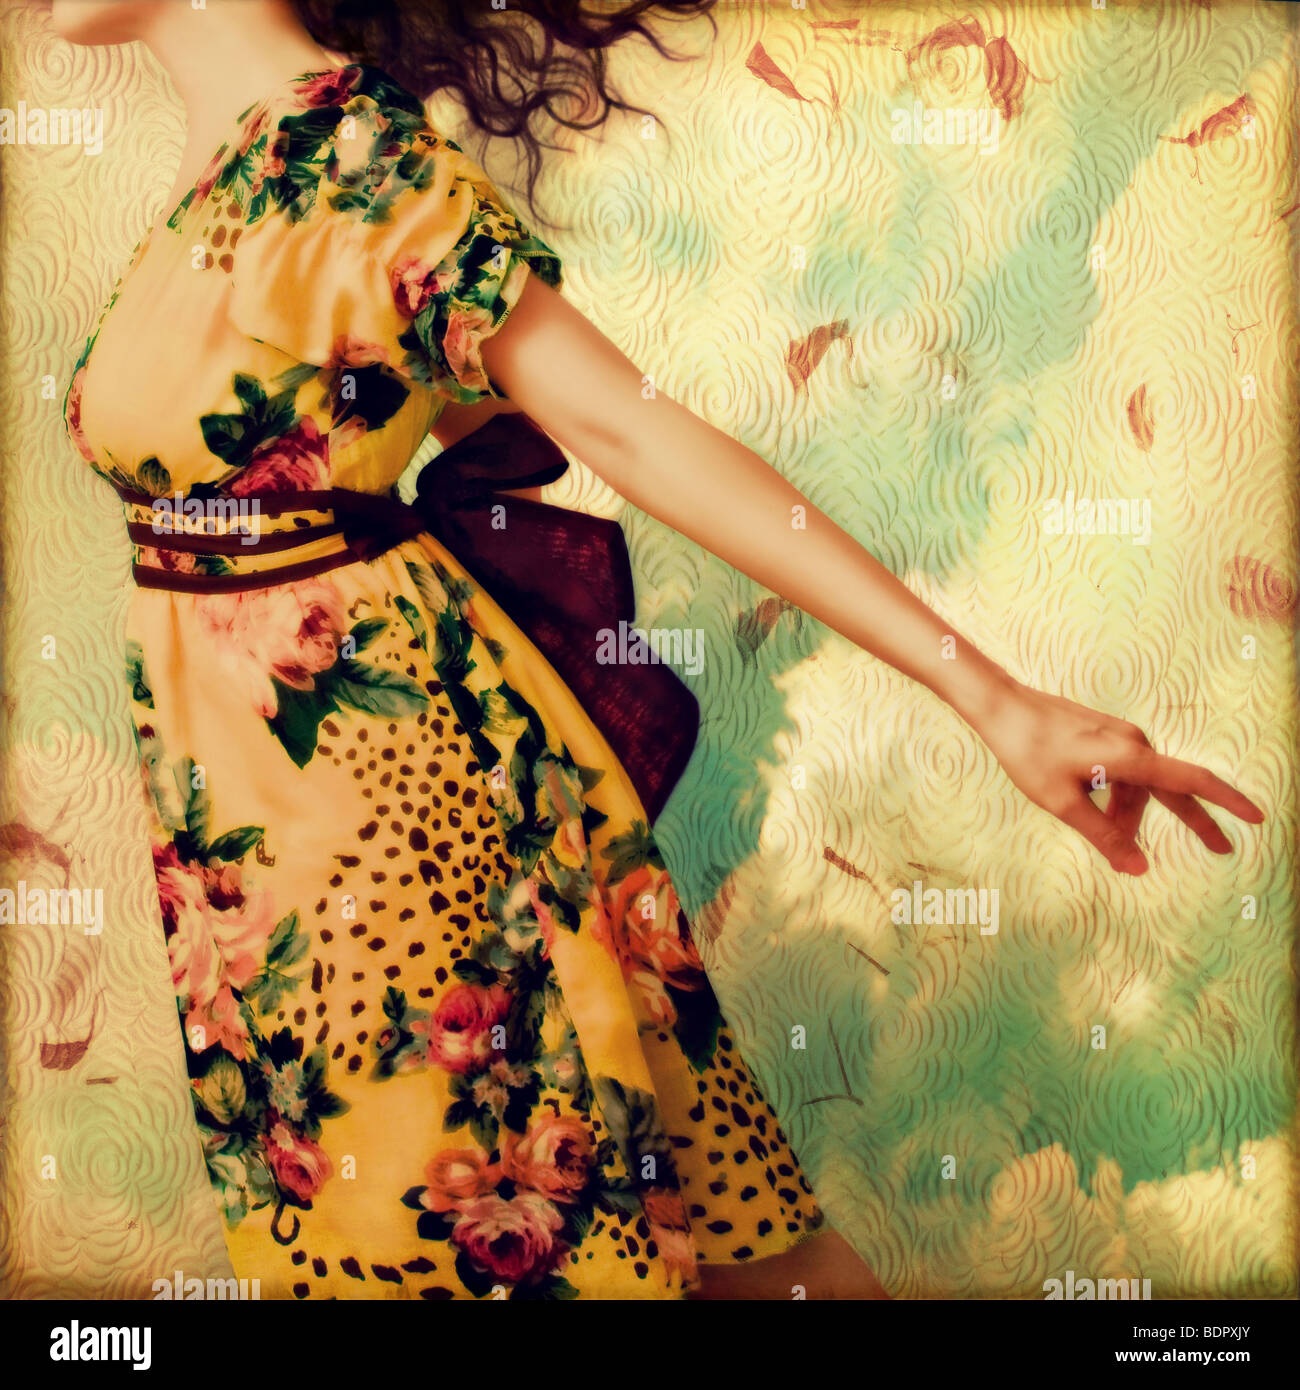 A young woman who appears to be floating against a textured background - Stock Image